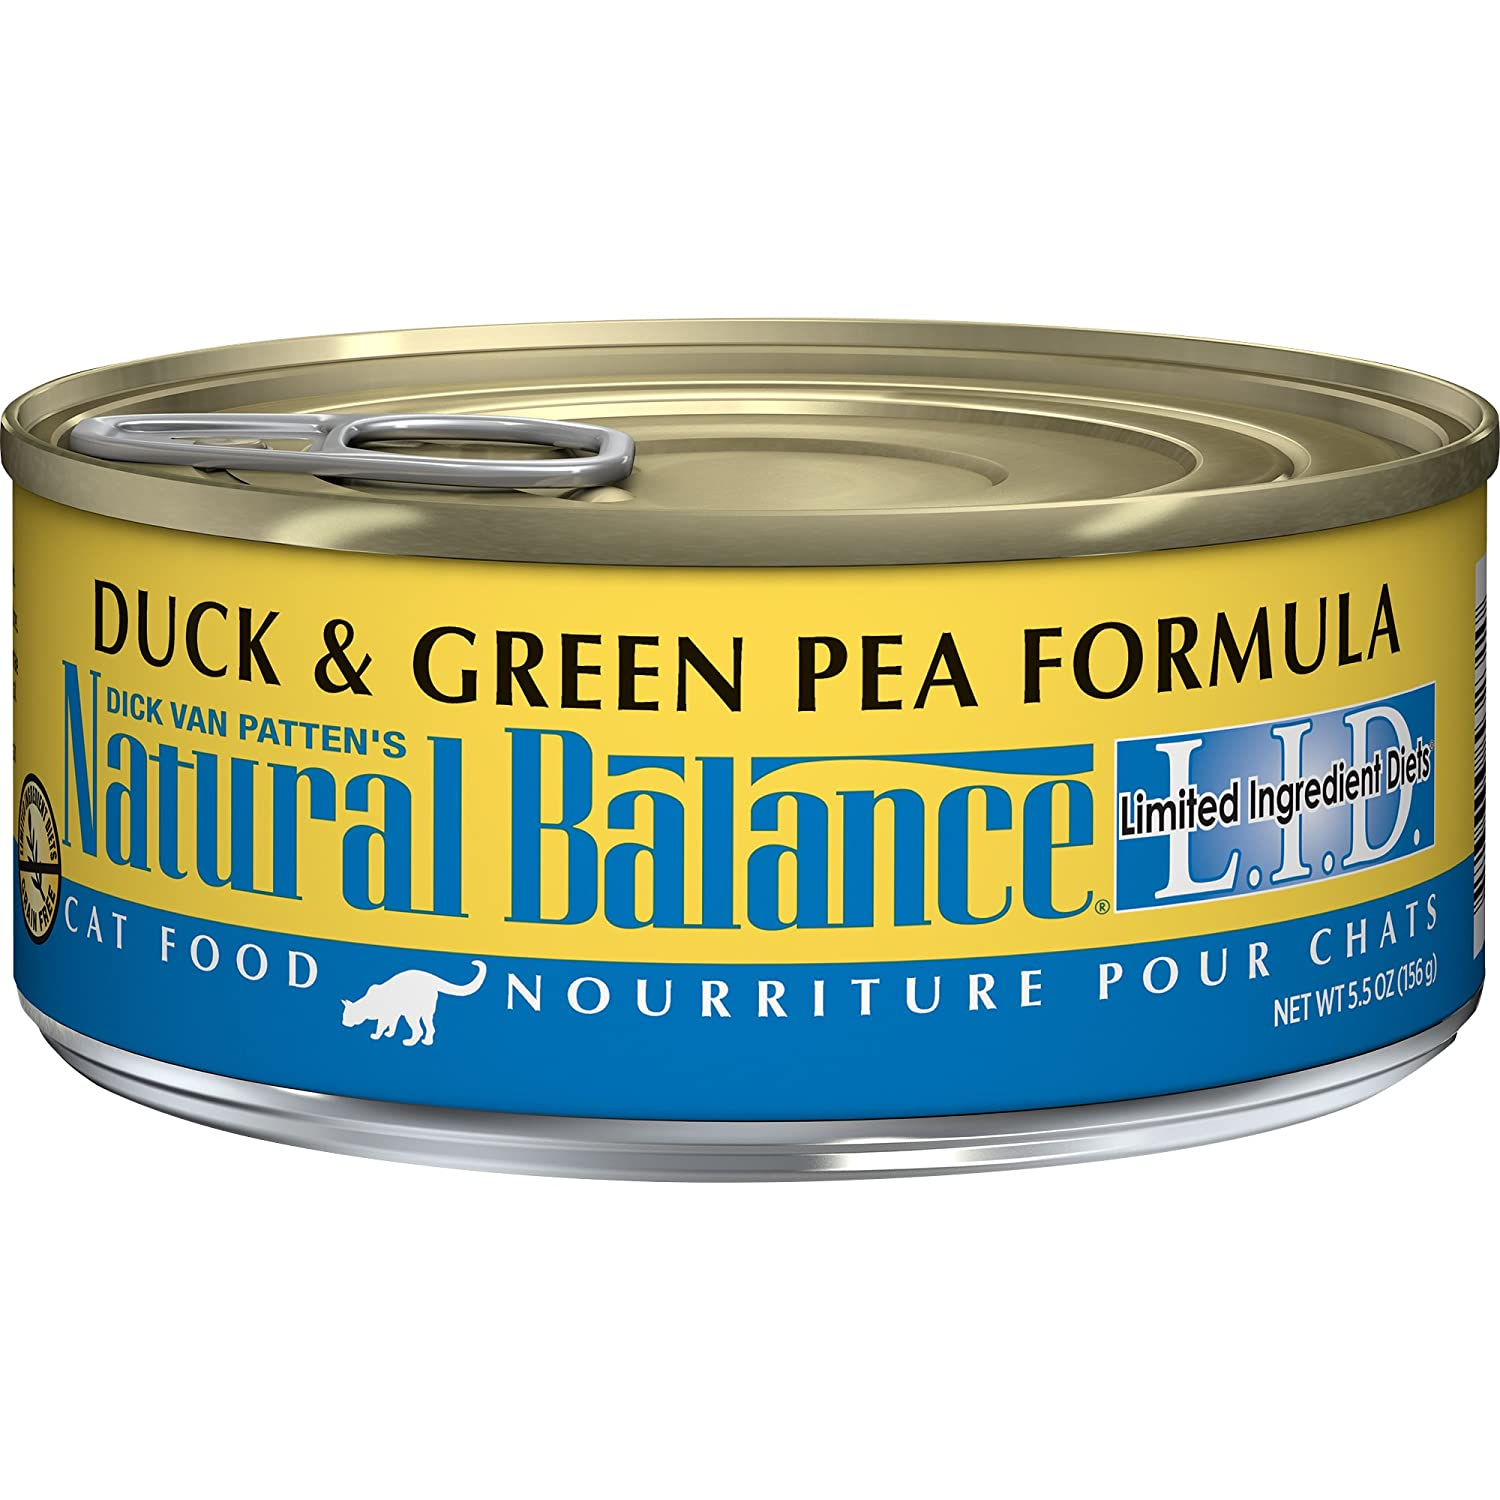 5.5-Ounce Natural Balance L.I.D. Limited Ingredient Diets Wet Cat Food, Duck & Green Pea Formula, 5.5-Ounce Can (Pack of 24)